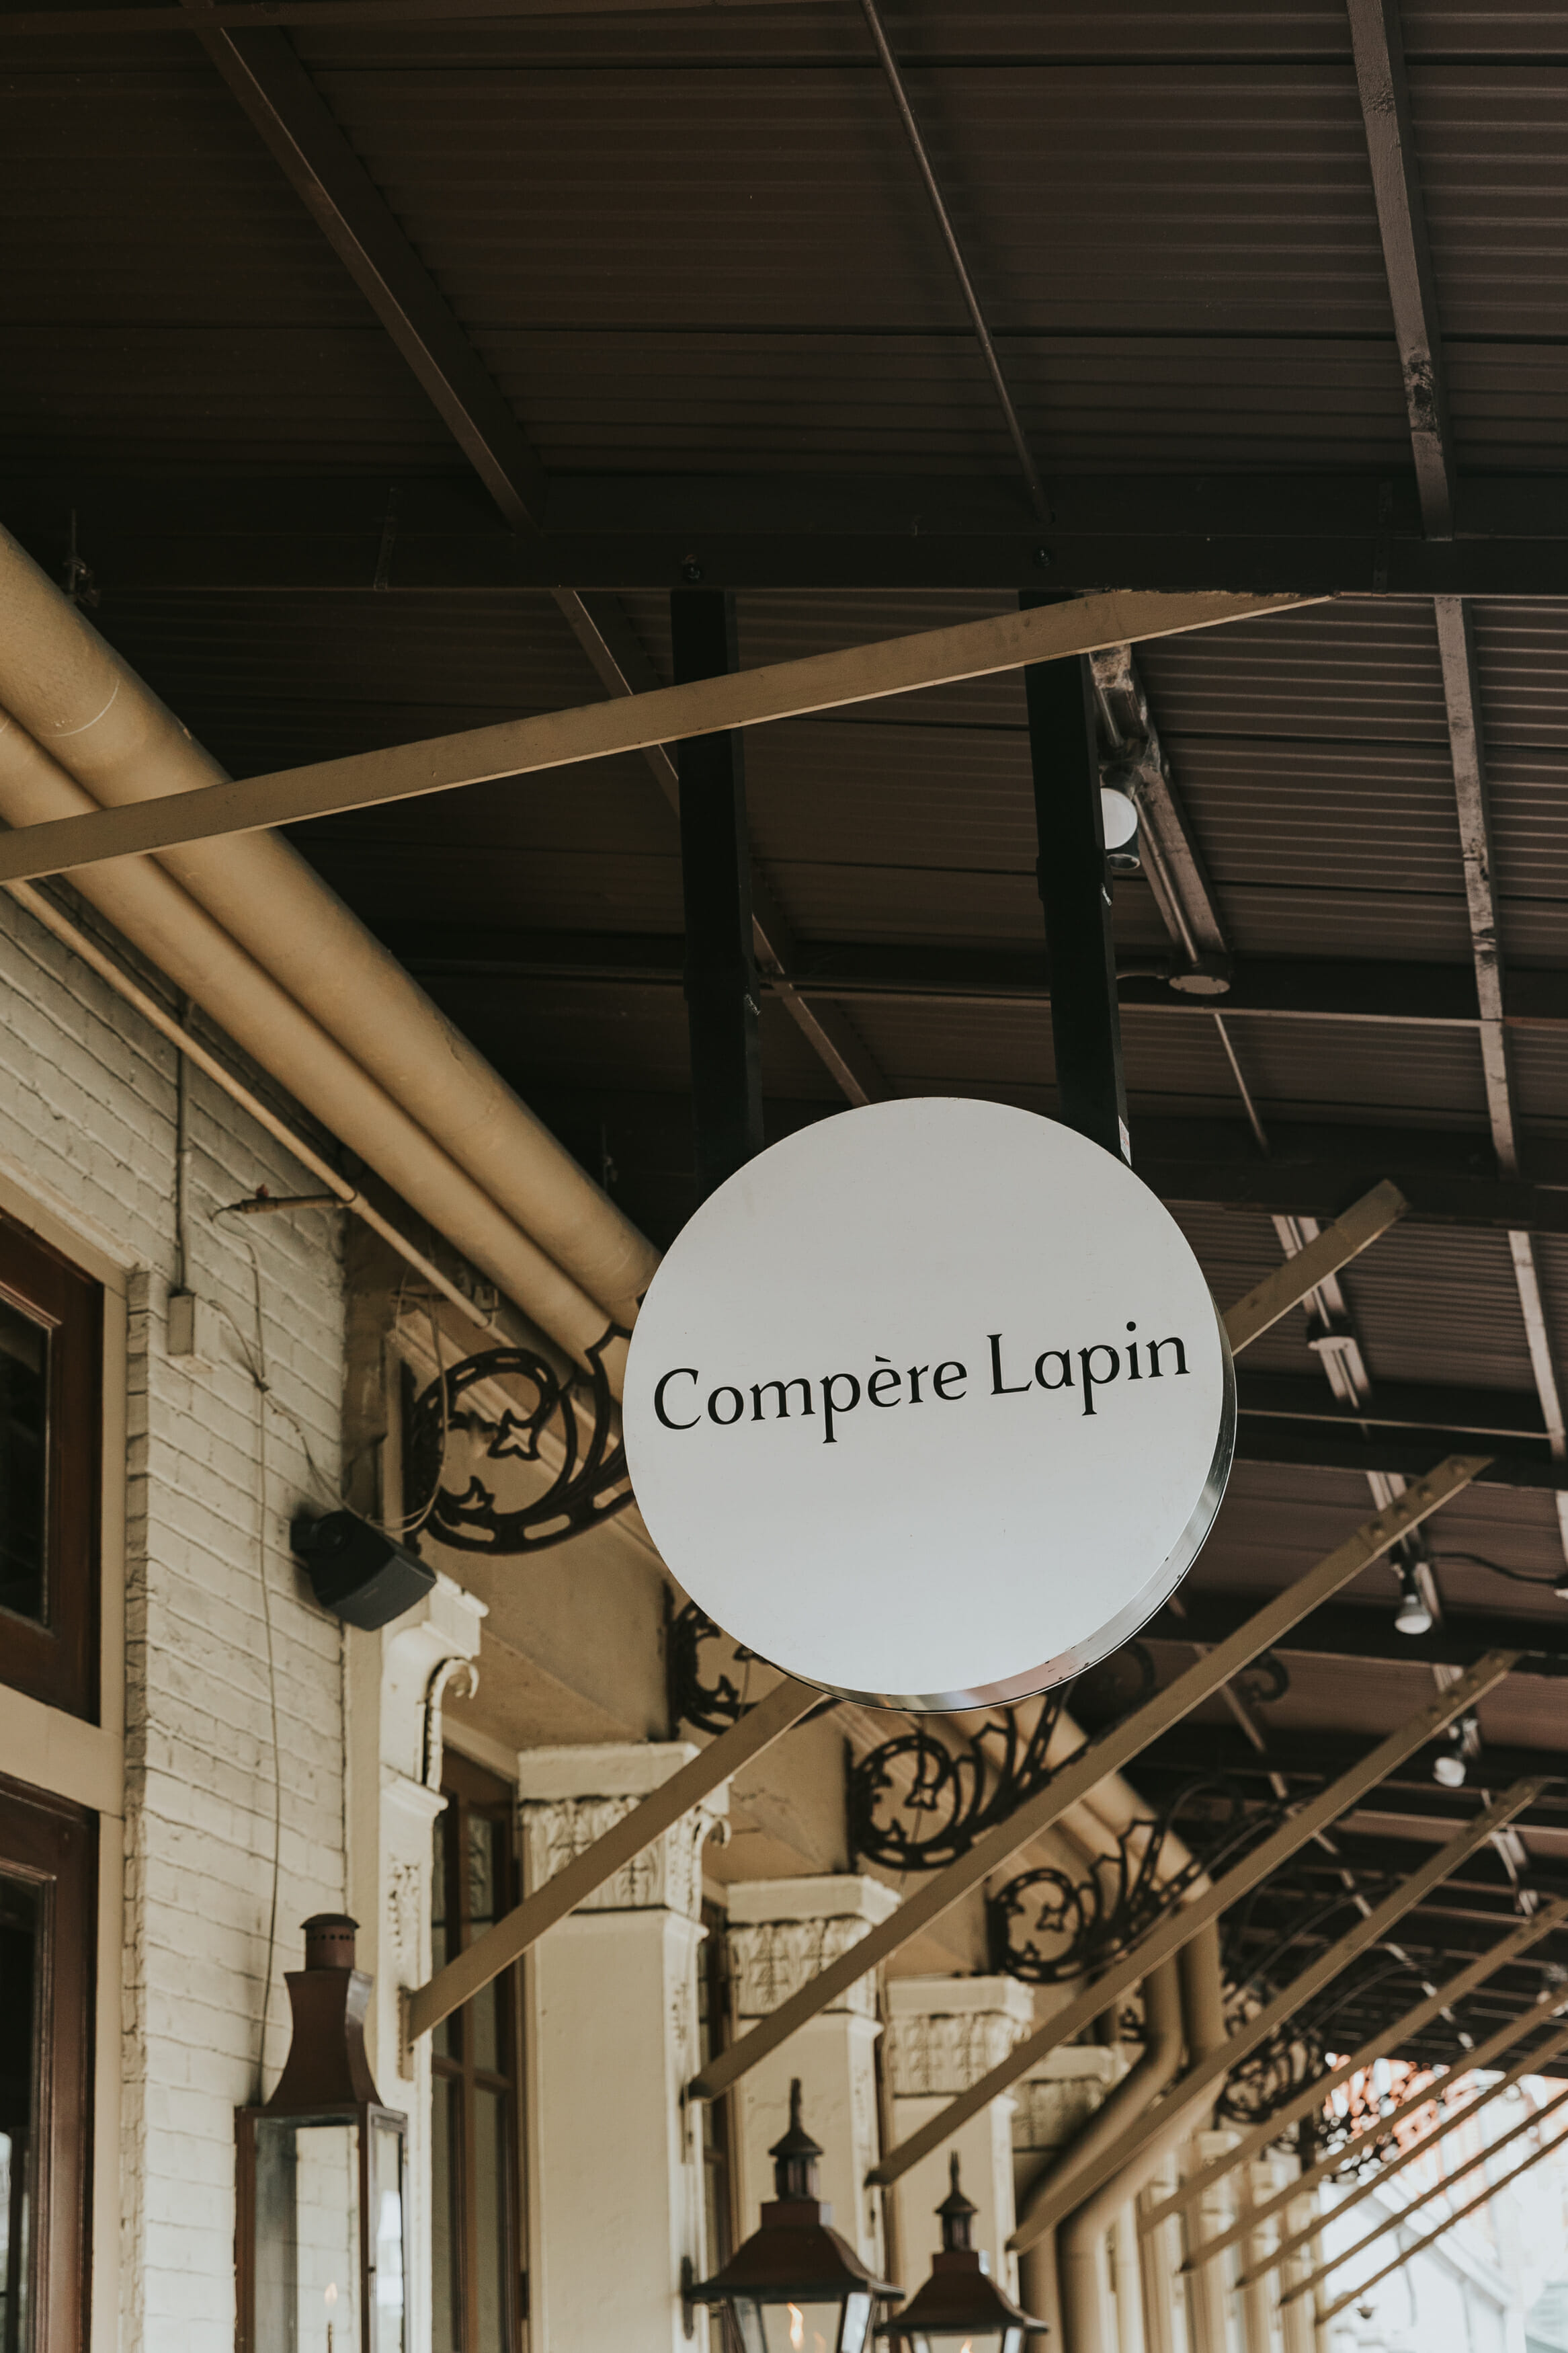 compere lapin restaurant sign